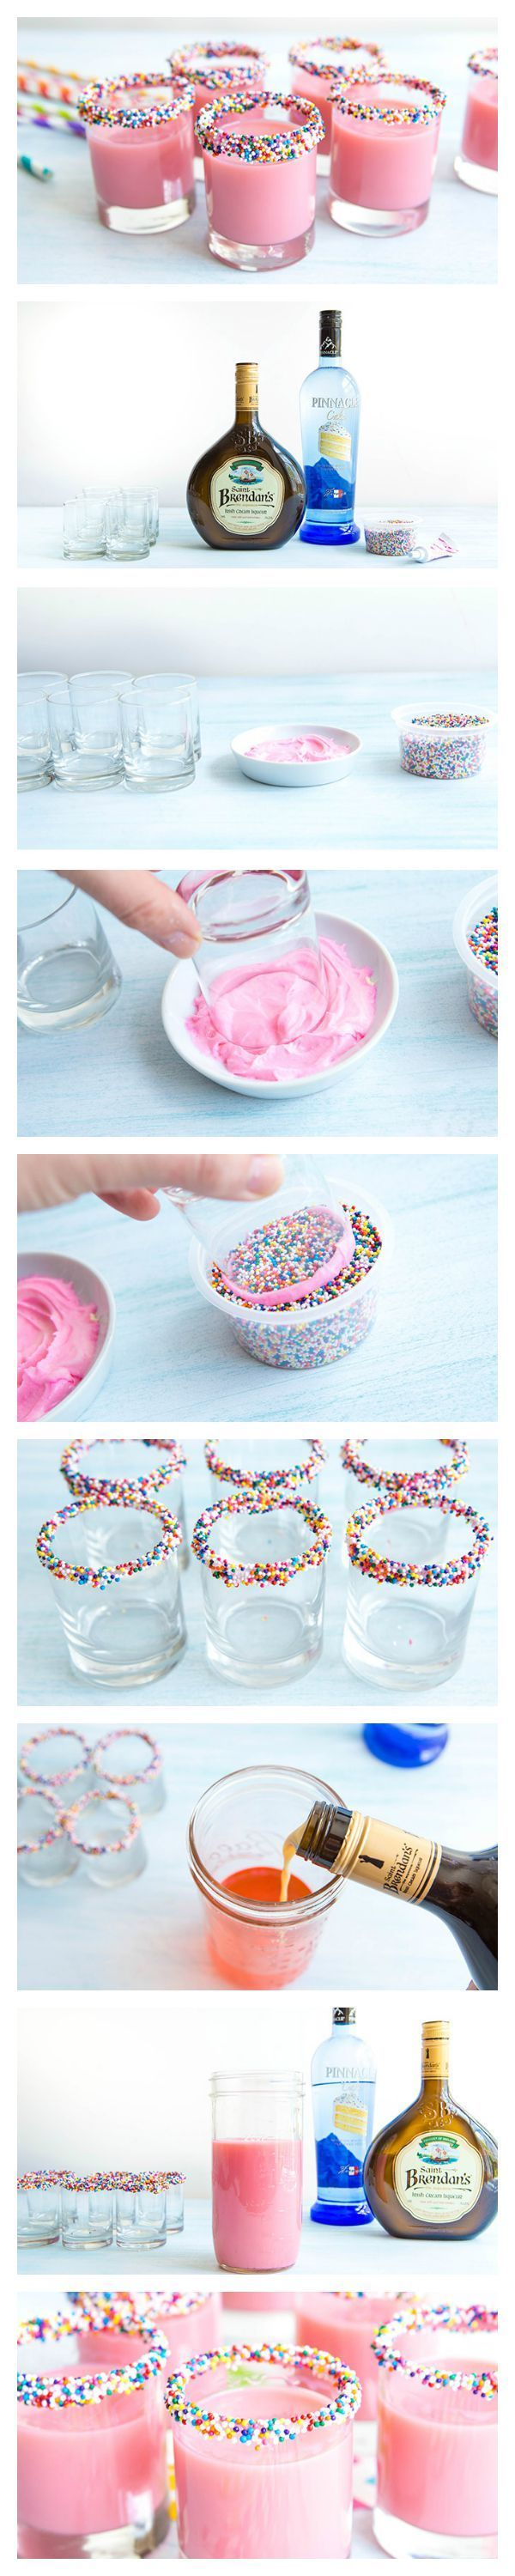 Birthday Cake Shots Recipe Bright pink Birthday cakes and Bright